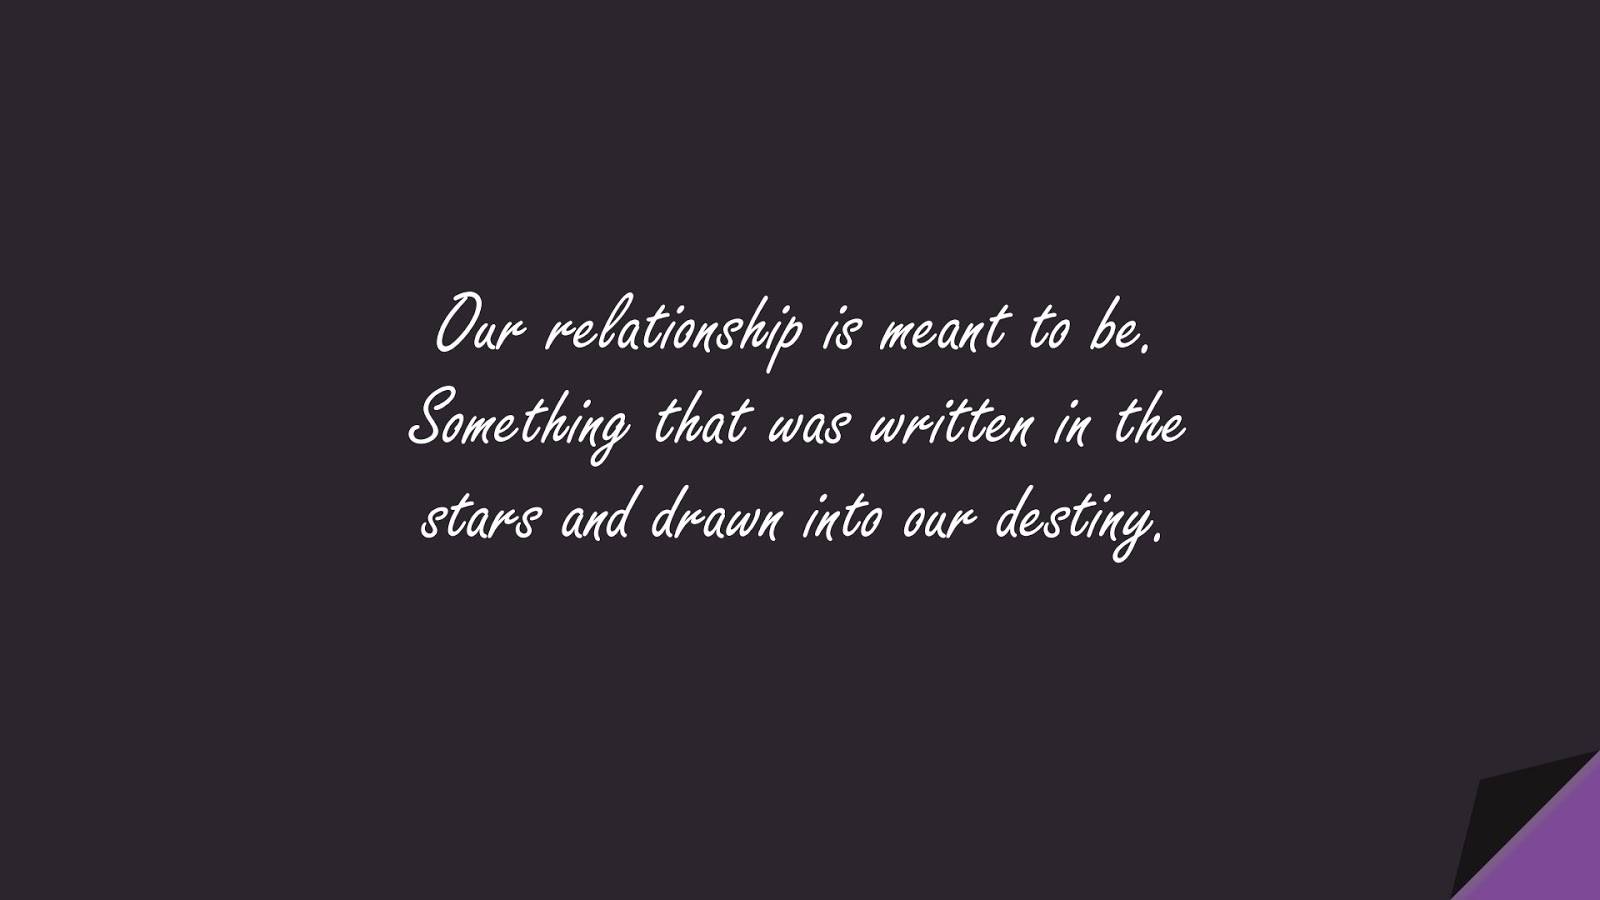 Our relationship is meant to be. Something that was written in the stars and drawn into our destiny.FALSE